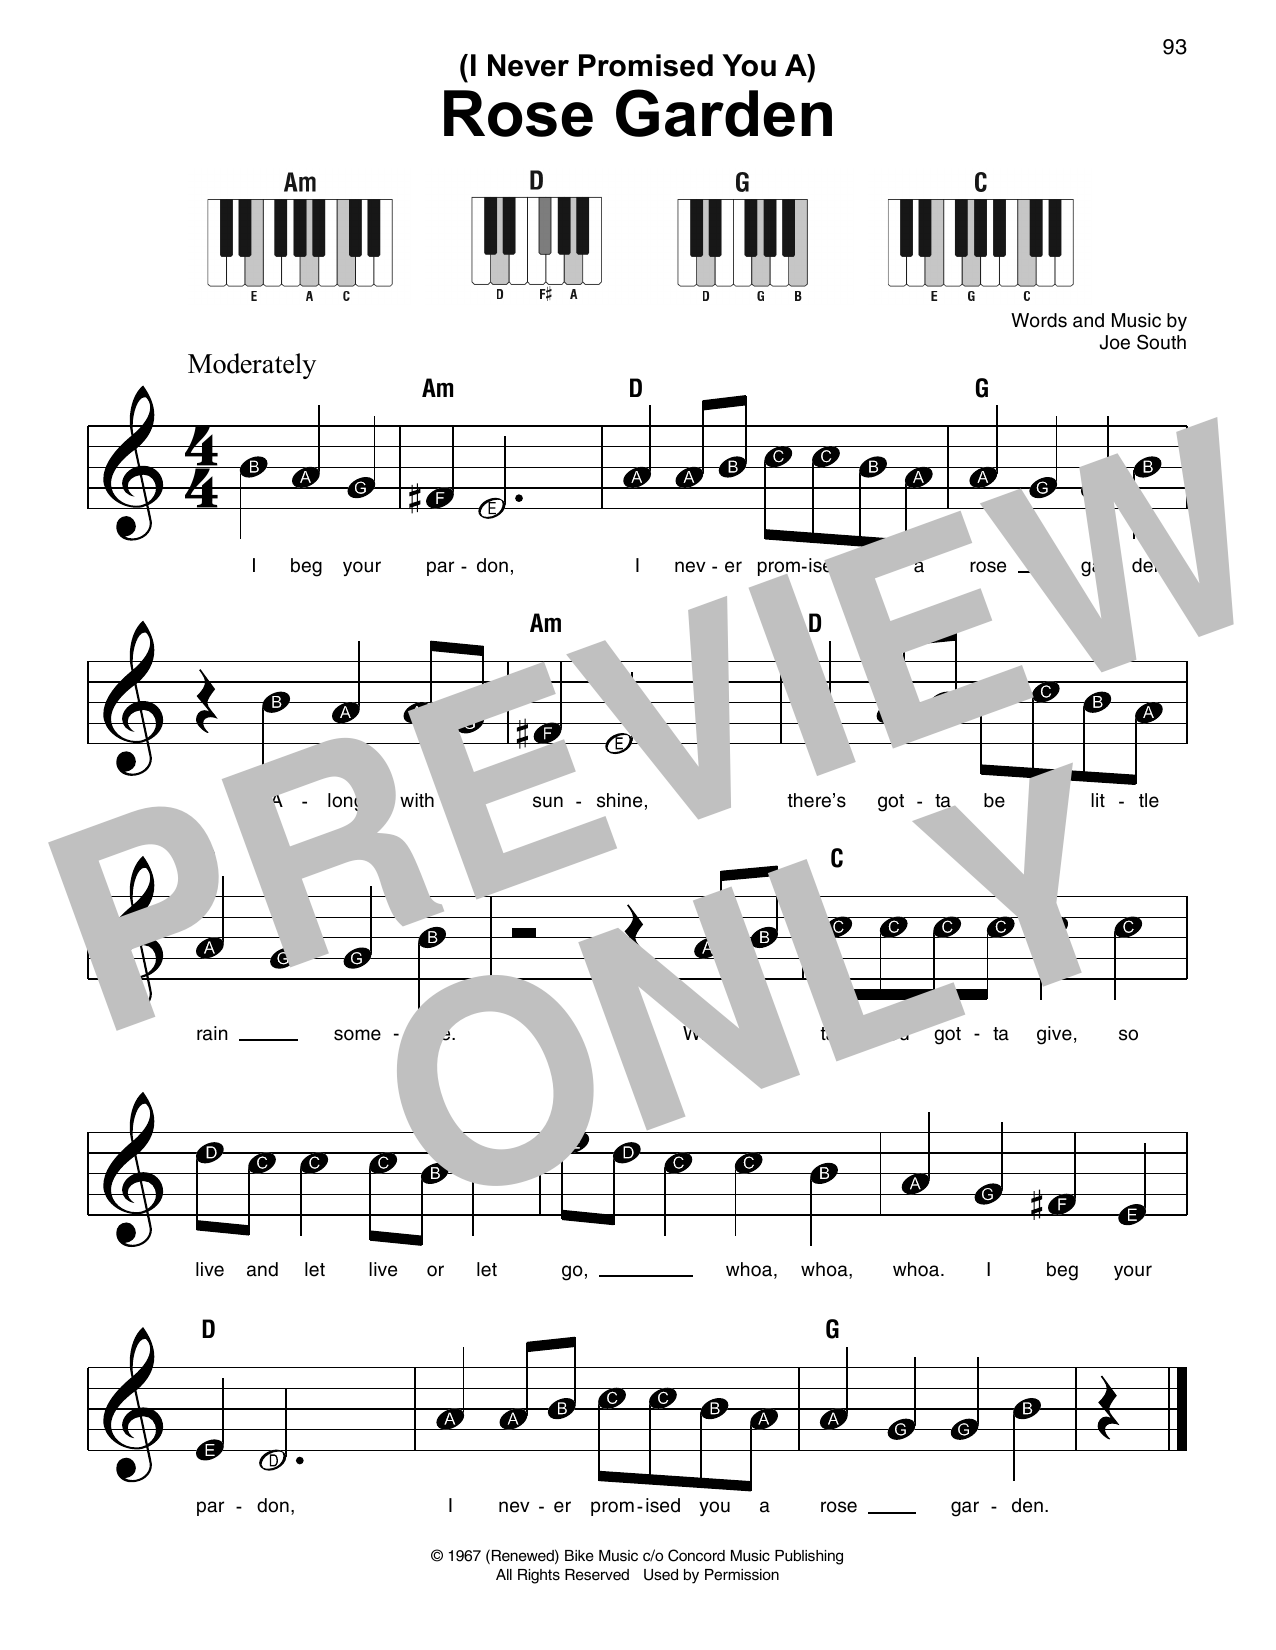 Martina McBride (I Never Promised You A) Rose Garden sheet music notes and chords. Download Printable PDF.